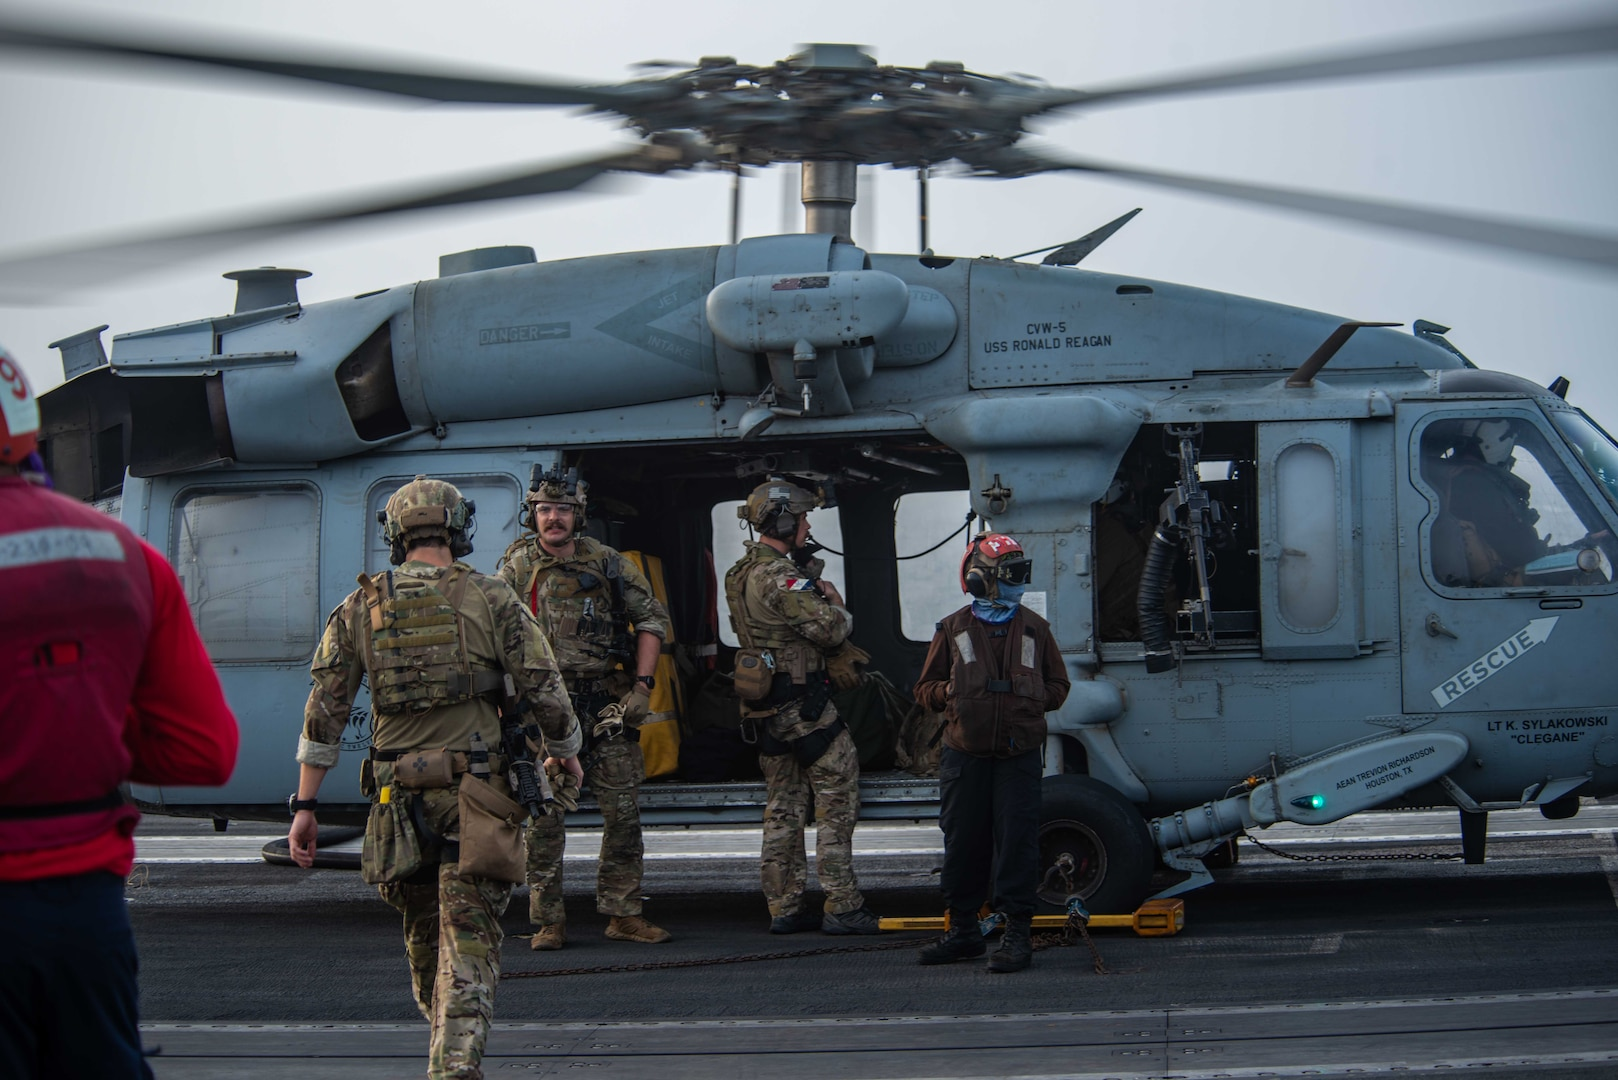 """210730-N-WS494-1238 ARABIAN SEA (July 30, 2021) – Sailors assigned to Explosive Ordnance Disposal Mobile Unit (EODMU) 5 board an MH-60S Sea Hawk helicopter, attached to the """"Golden Falcons"""" of Helicopter Sea Combat Squadron (HSC) 12, on the flight deck of aircraft carrier USS Ronald Reagan (CVN 76) in response to a call for assistance from a vessel in distress in the Arabian Sea, July 30. Ronald Reagan is deployed to the U.S. 5th Fleet area of operations in support of naval operations to ensure maritime stability and security in the Central Region, connecting the Mediterranean and Pacific through the western Indian Ocean and three strategic choke points. (U.S. Navy photo by Mass Communication Specialist 2nd Class Quinton A. Lee)"""